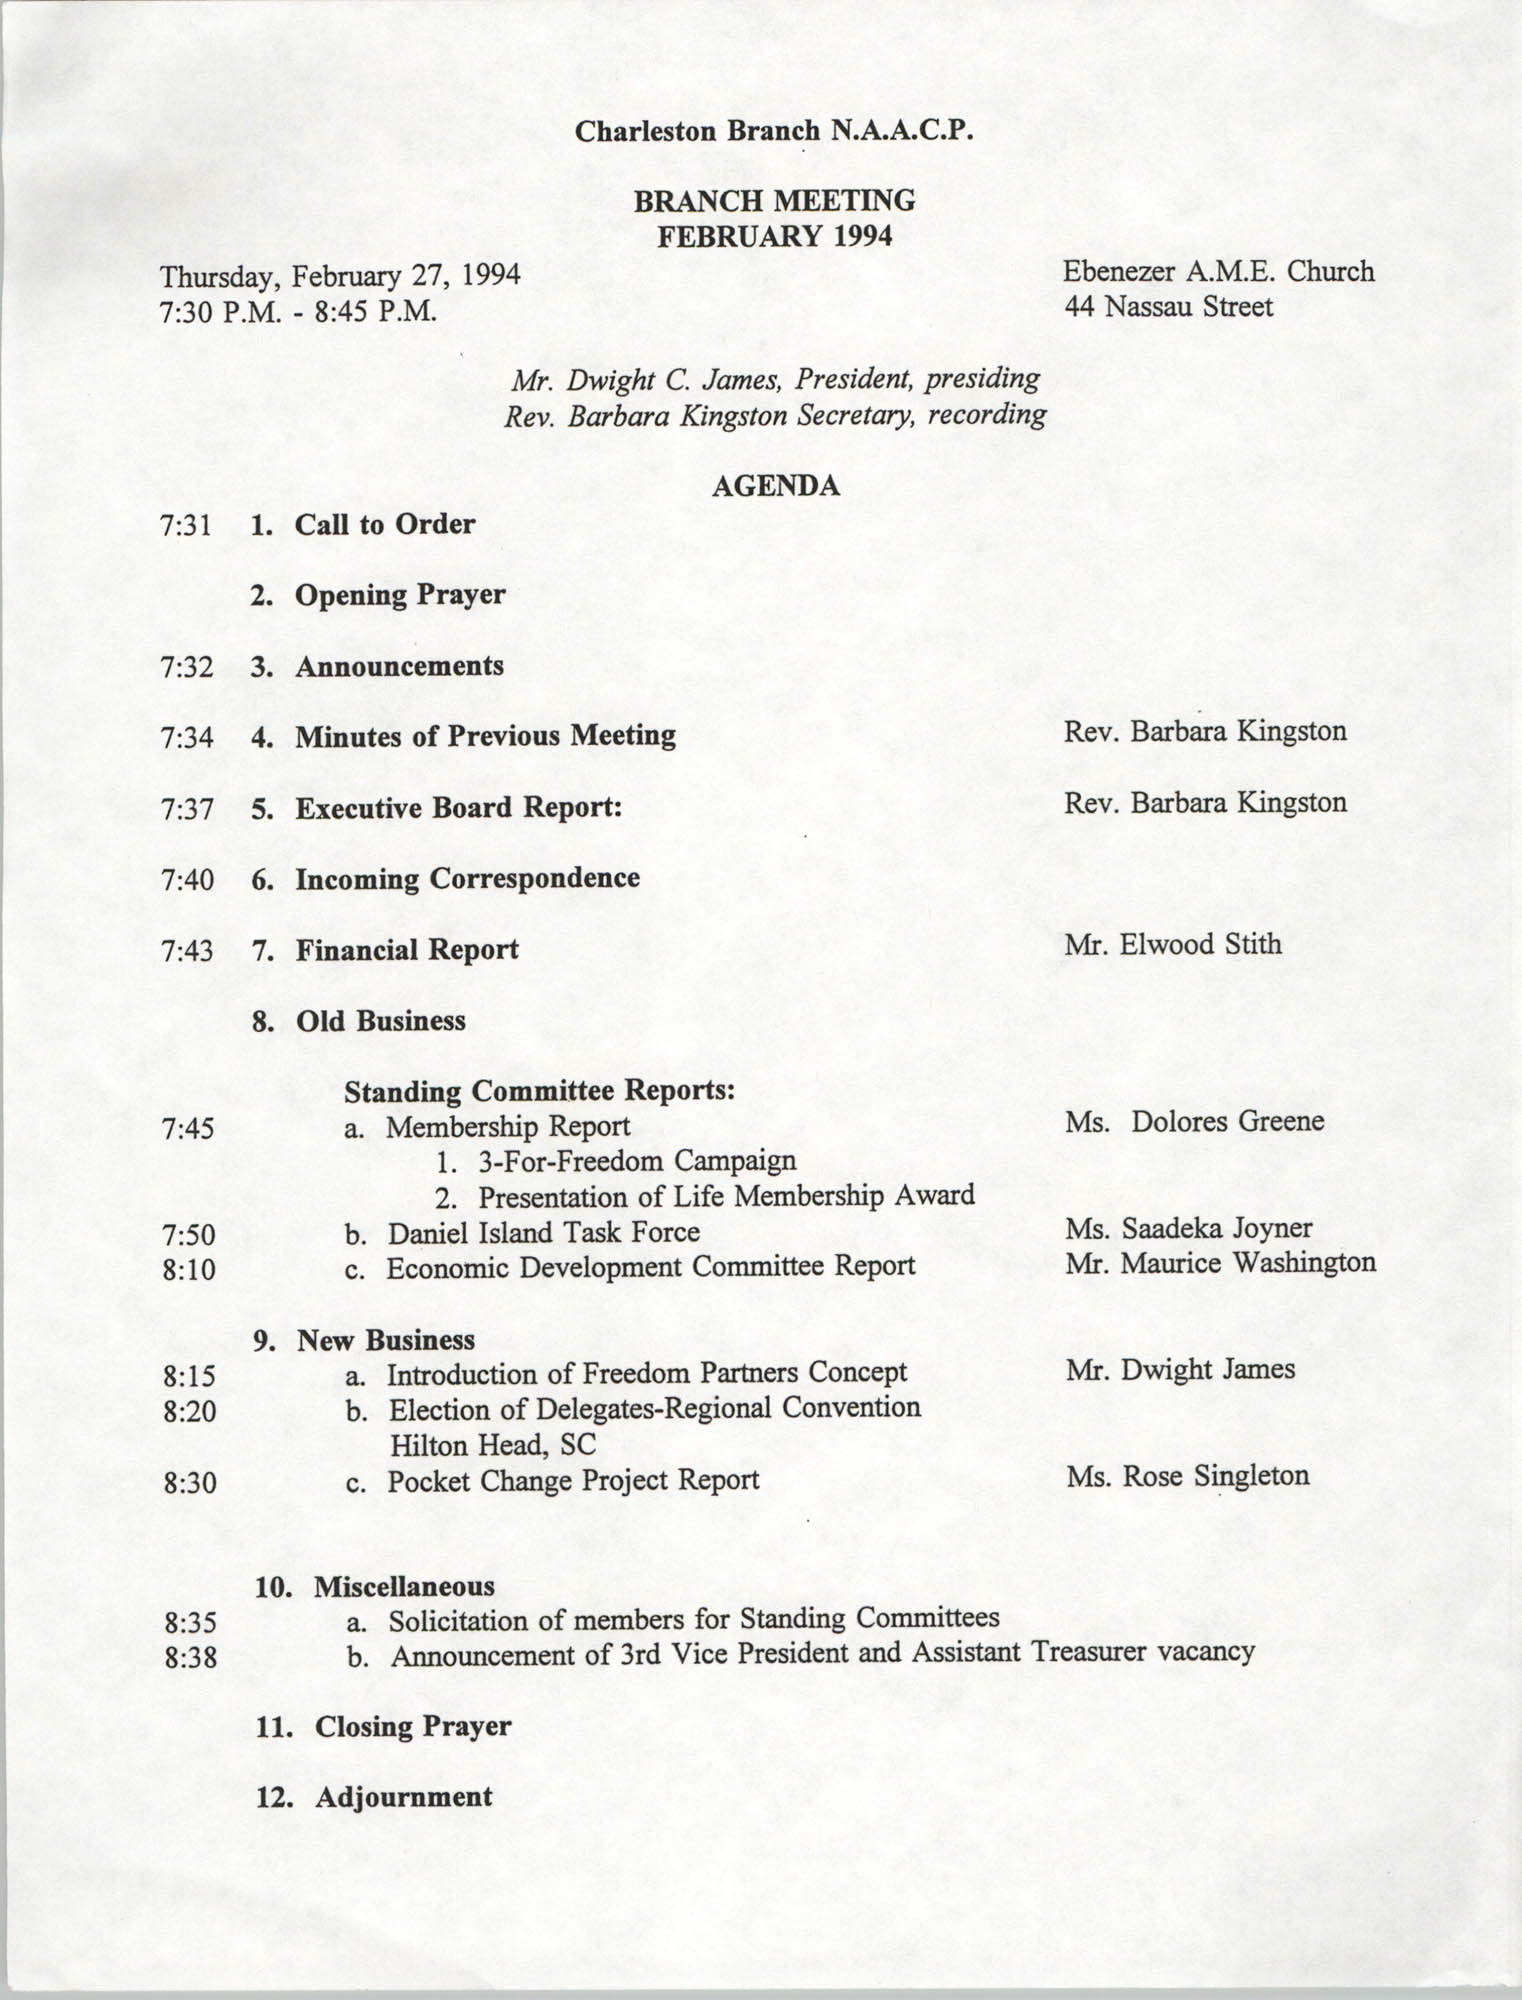 Agenda, Charleston Branch of the NAACP Branch Meeting, February 27, 1994